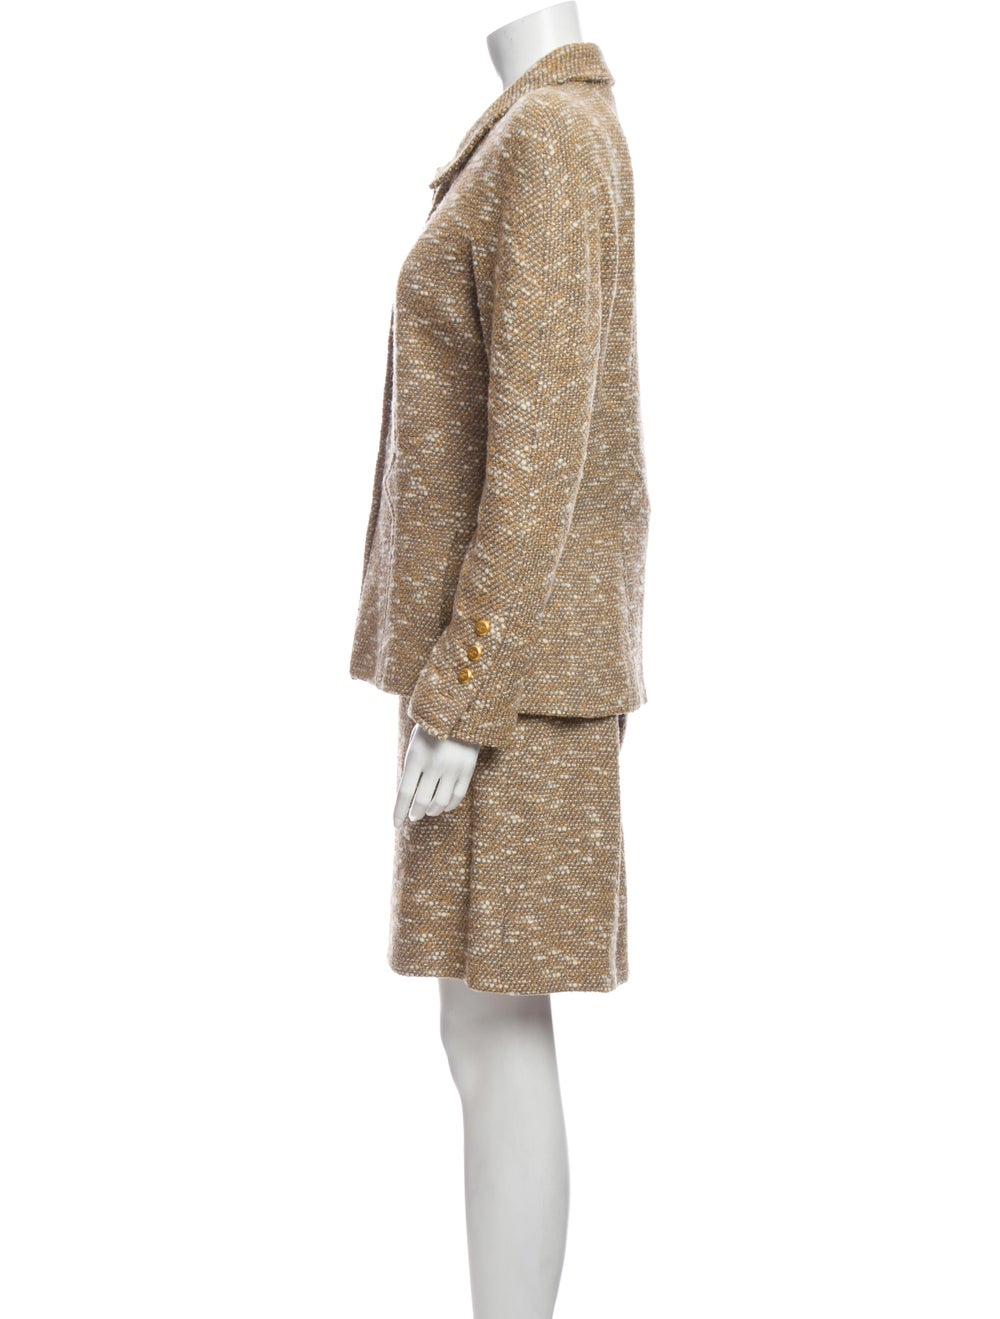 Chanel 1996 Wool Skirt Suit Wool - image 2